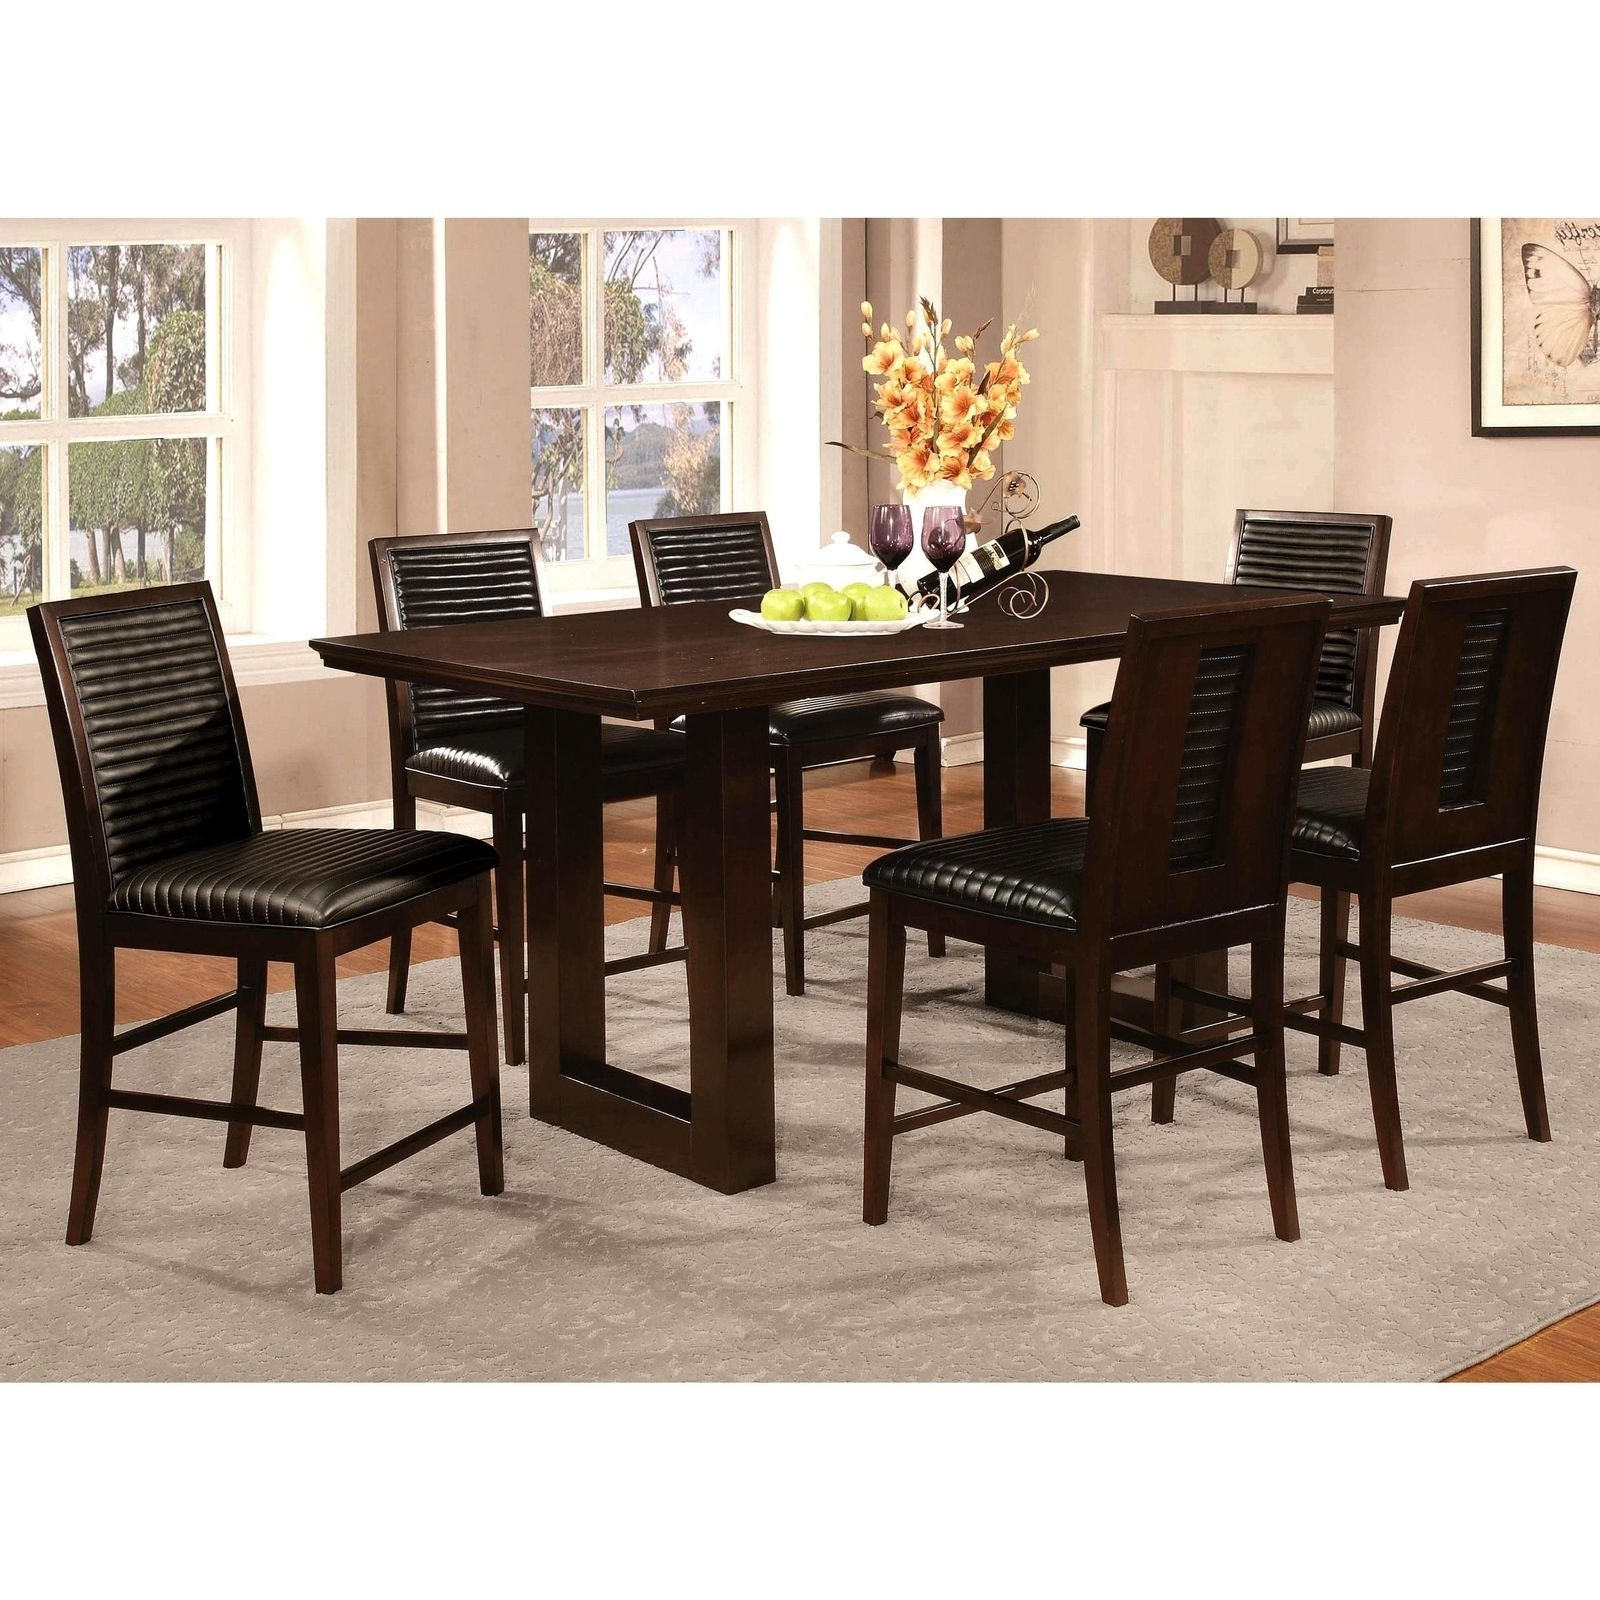 Sapire Channel Quilted Upholstered 7 Pc Counter Height Dining Set Inside 2017 Laurent 7 Piece Counter Sets With Upholstered Counterstools (View 18 of 25)